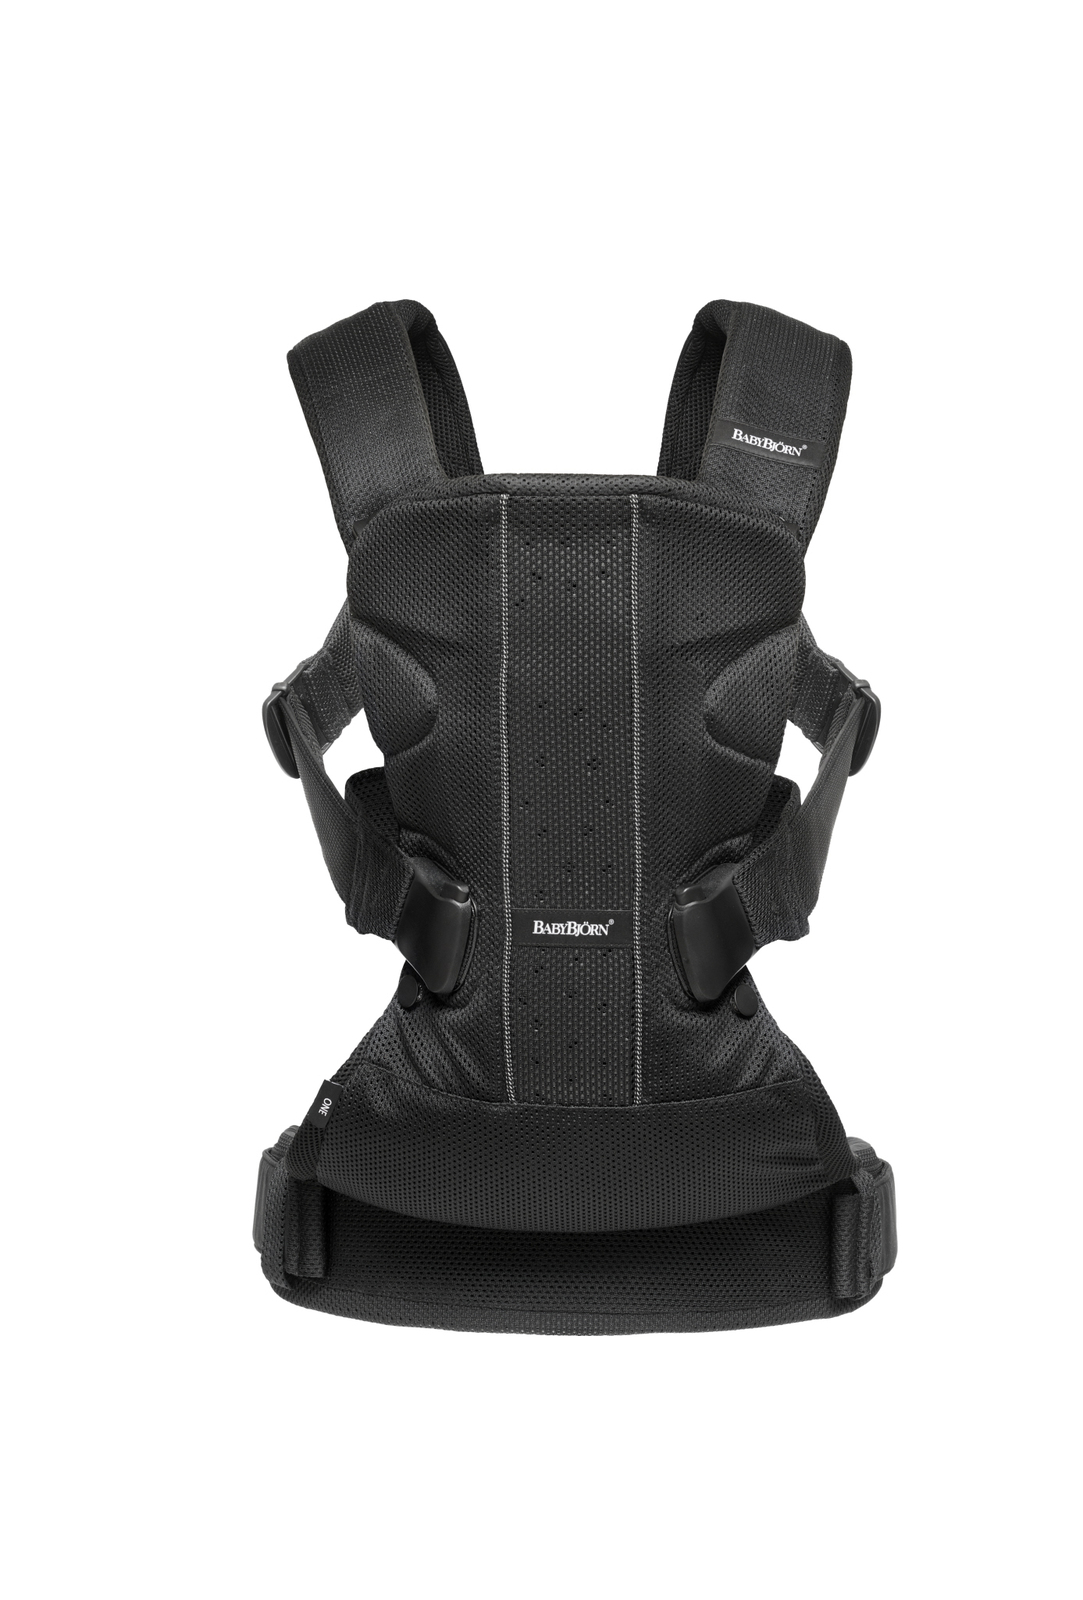 Babybjorn One Air Carrier Mesh Baby Carriers Perth